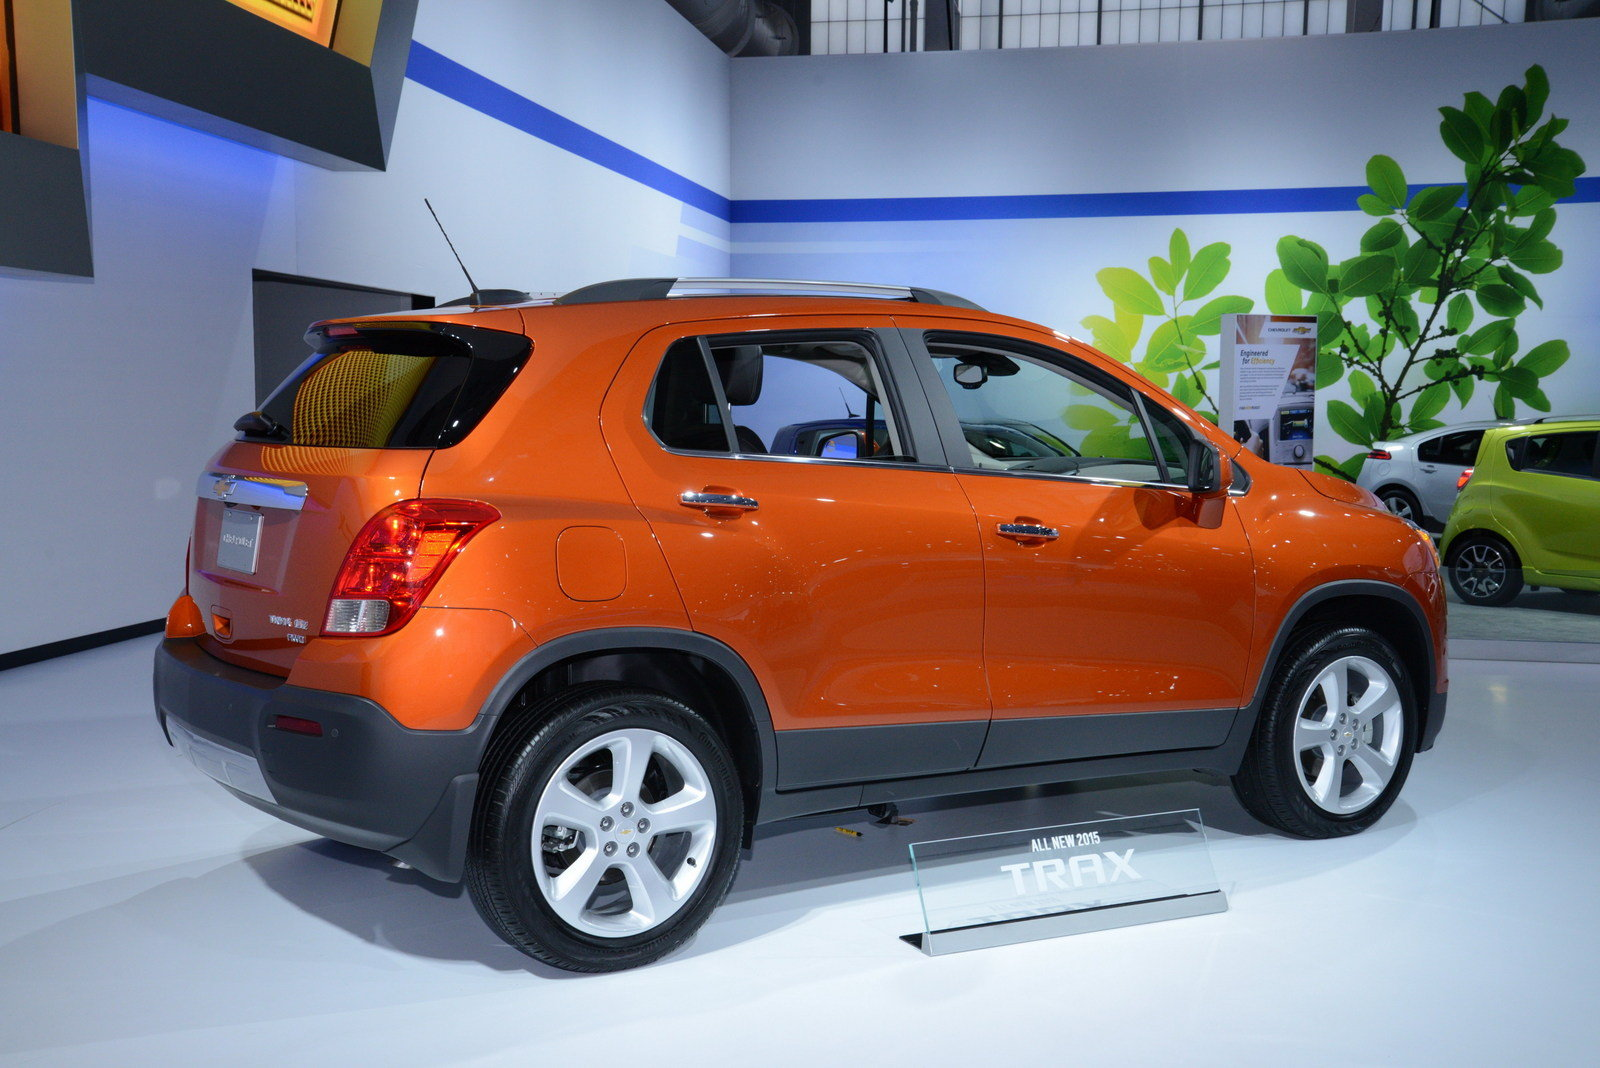 2015 chevrolet trax picture 549386 car review top speed. Black Bedroom Furniture Sets. Home Design Ideas